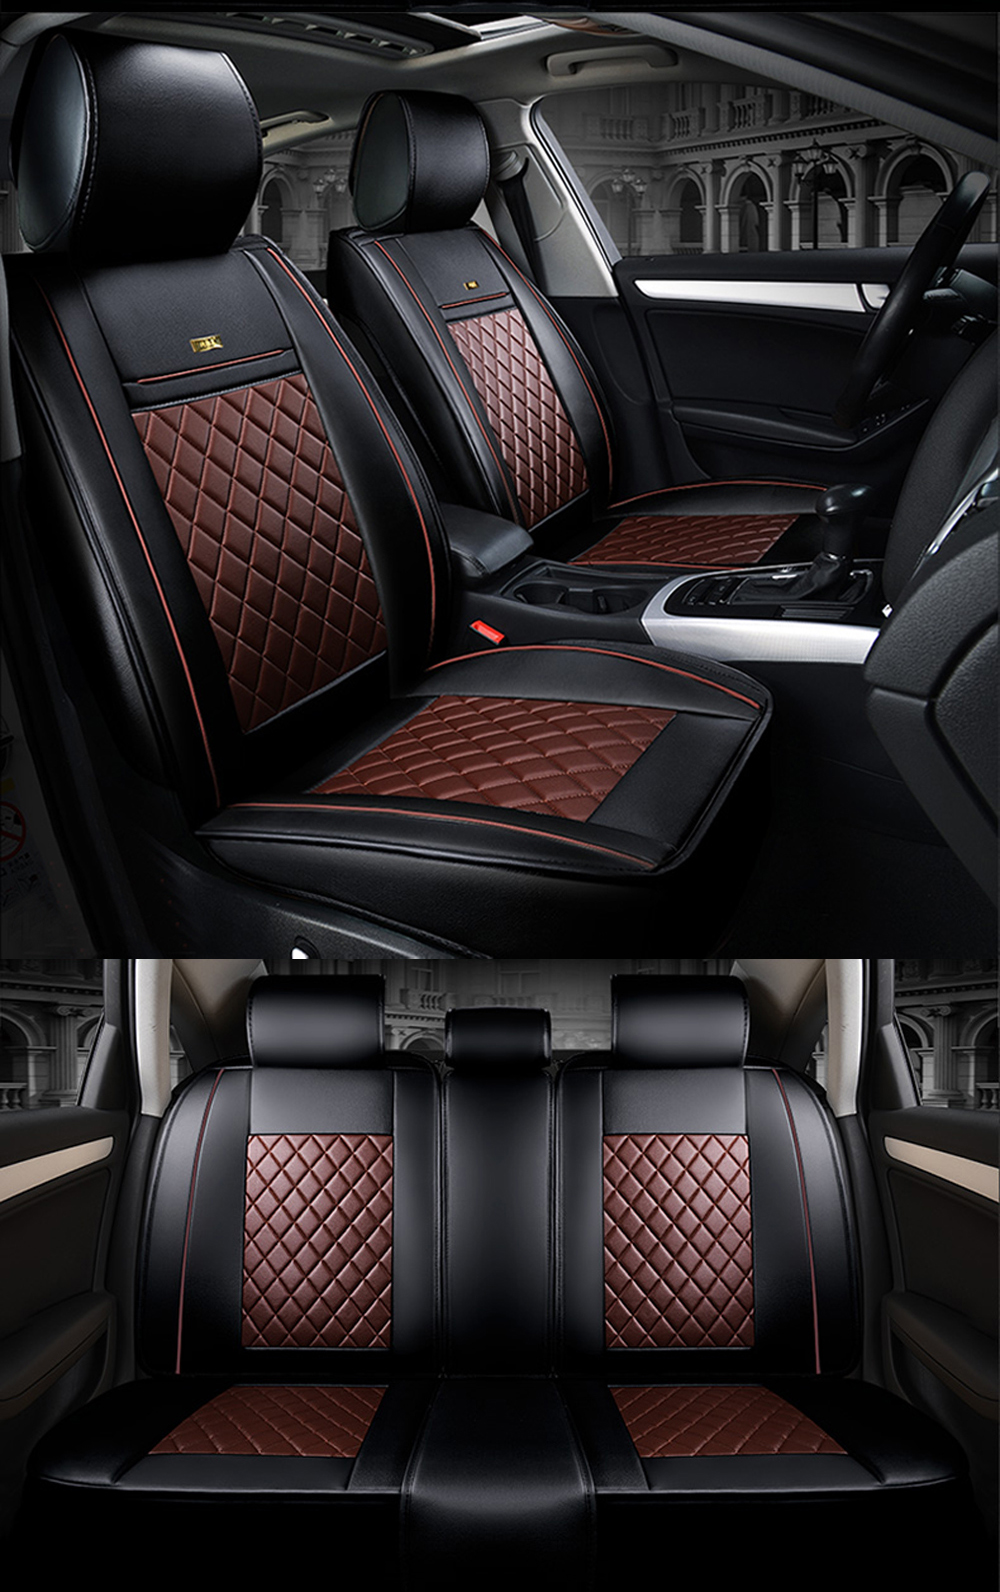 Front Rear Luxury Leather Car Seat Covers For Bmw E30 E34 E36 E39 E46 E60 F10 F30 X3 X5 X6 Car Accessories Auto Styling Seat Cover Set Seat Cover Set For